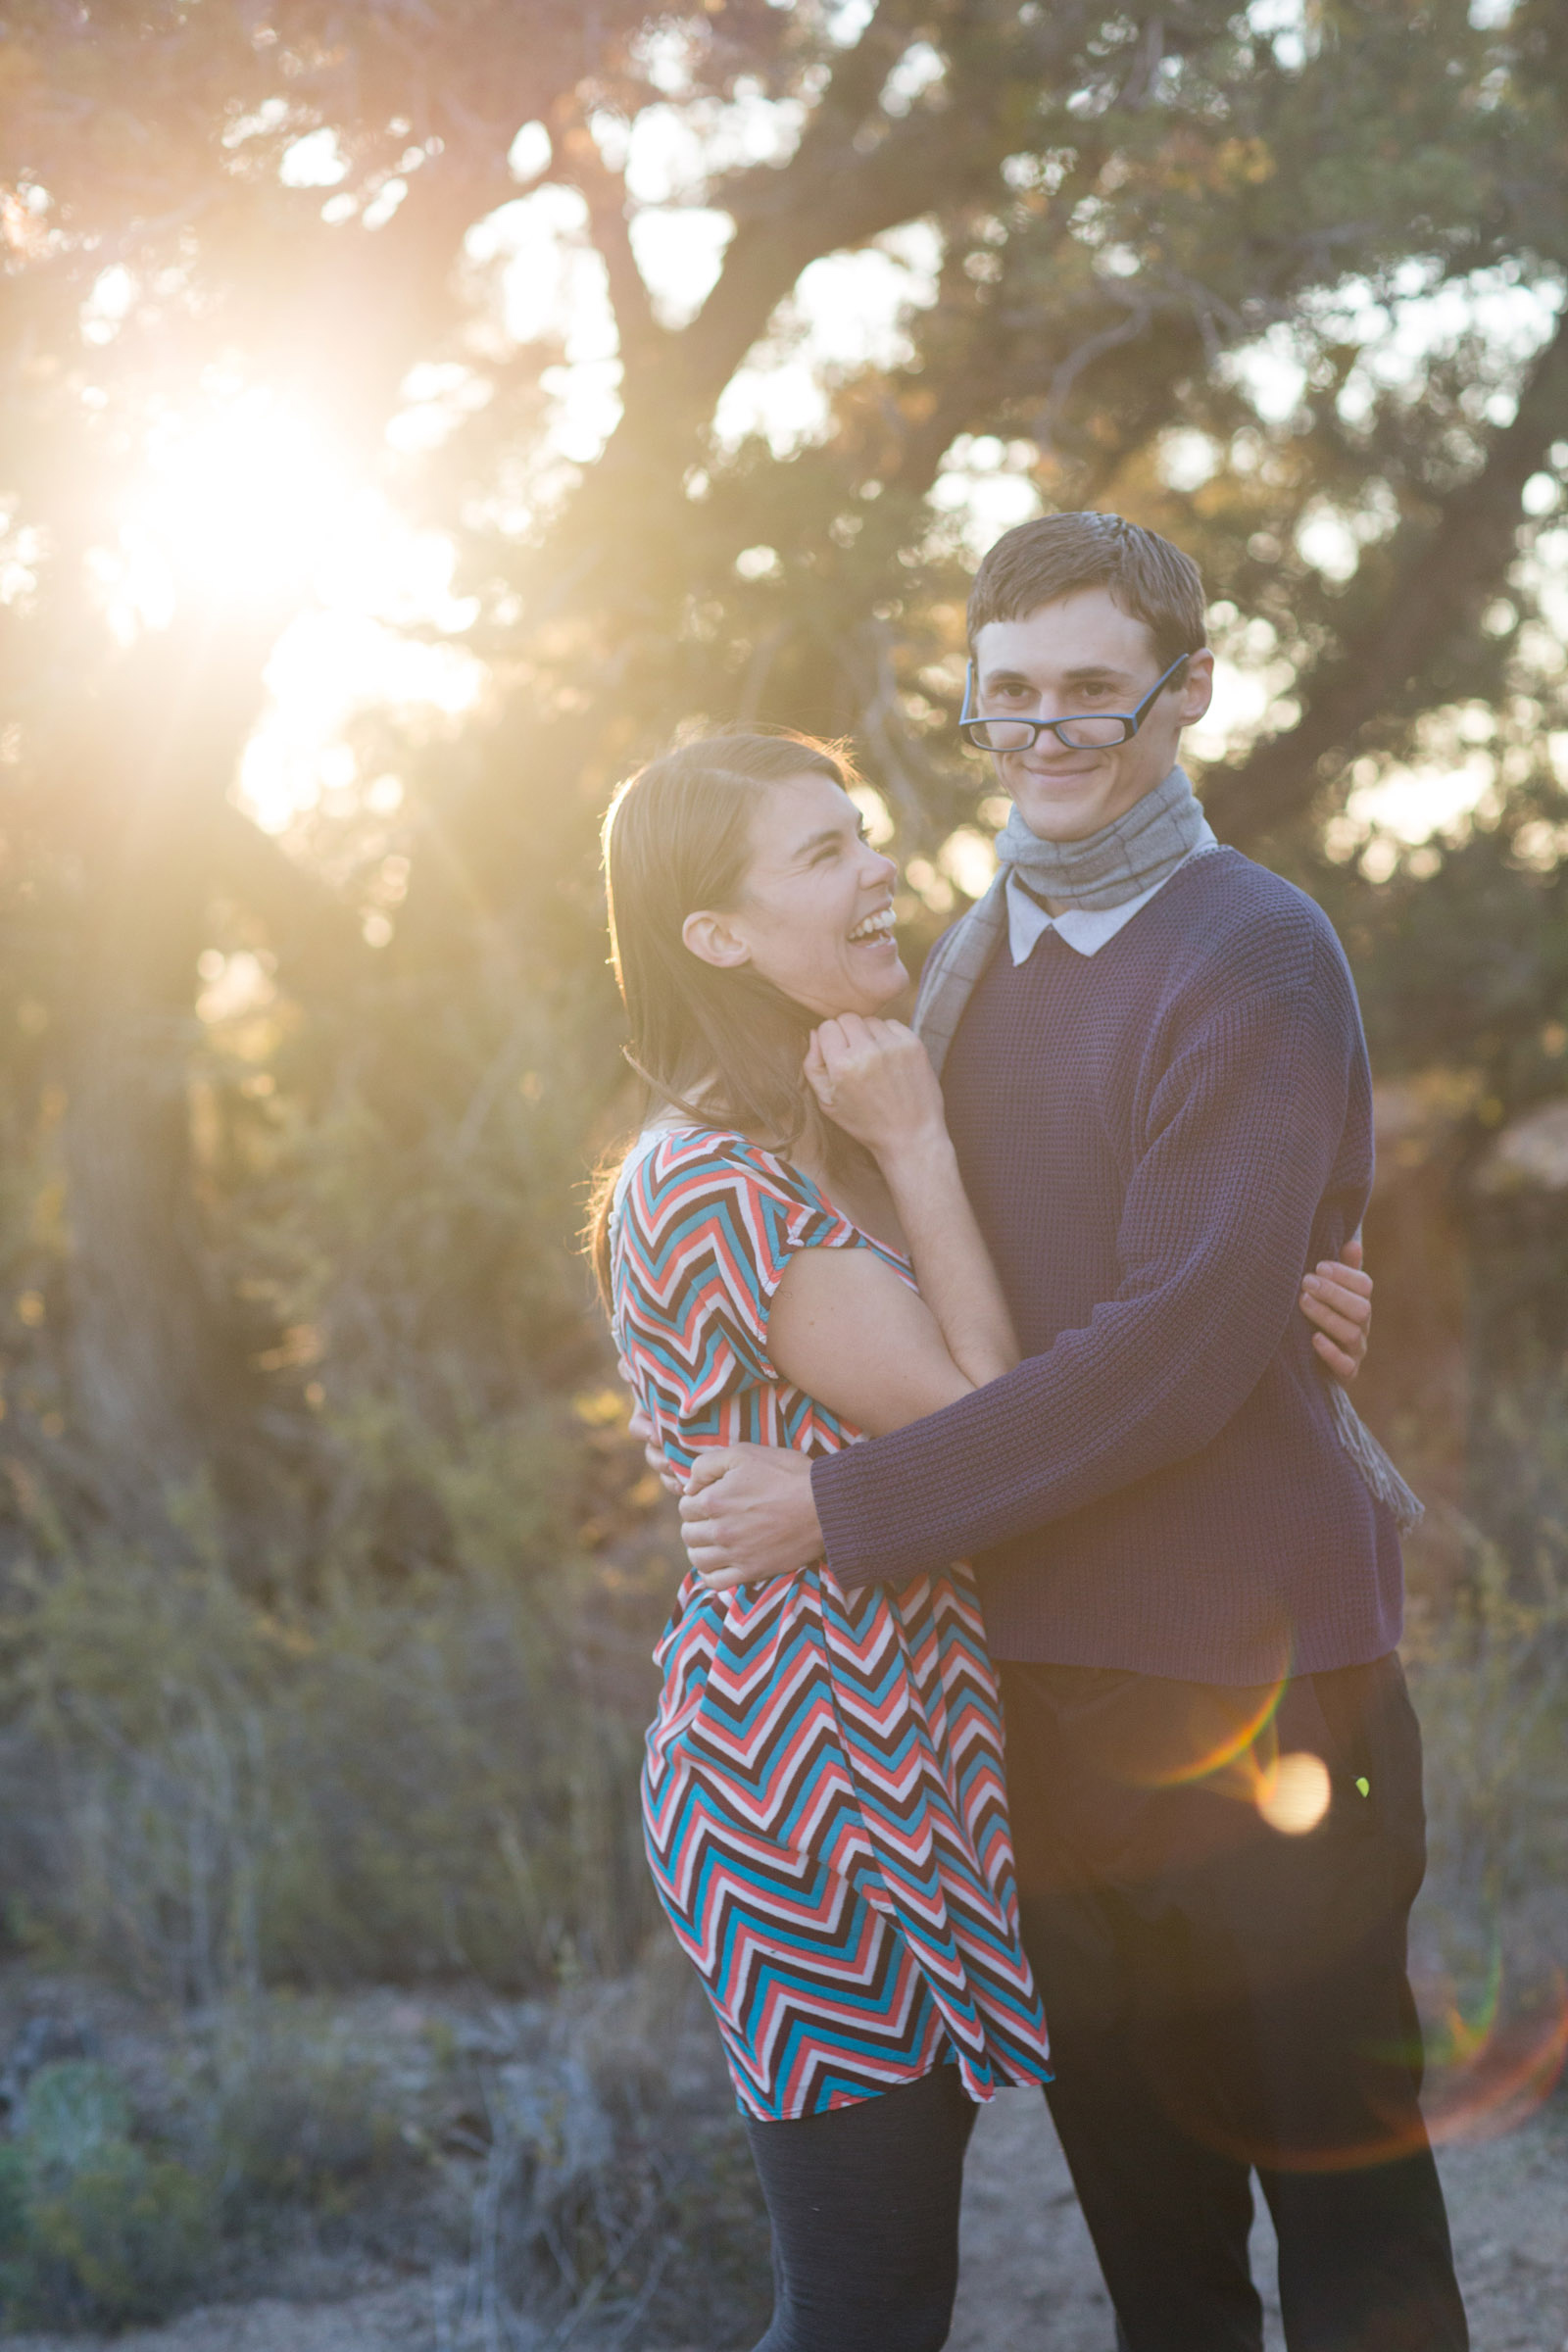 087-engagement-photographers-in-nm-farmington-and-albuquerque